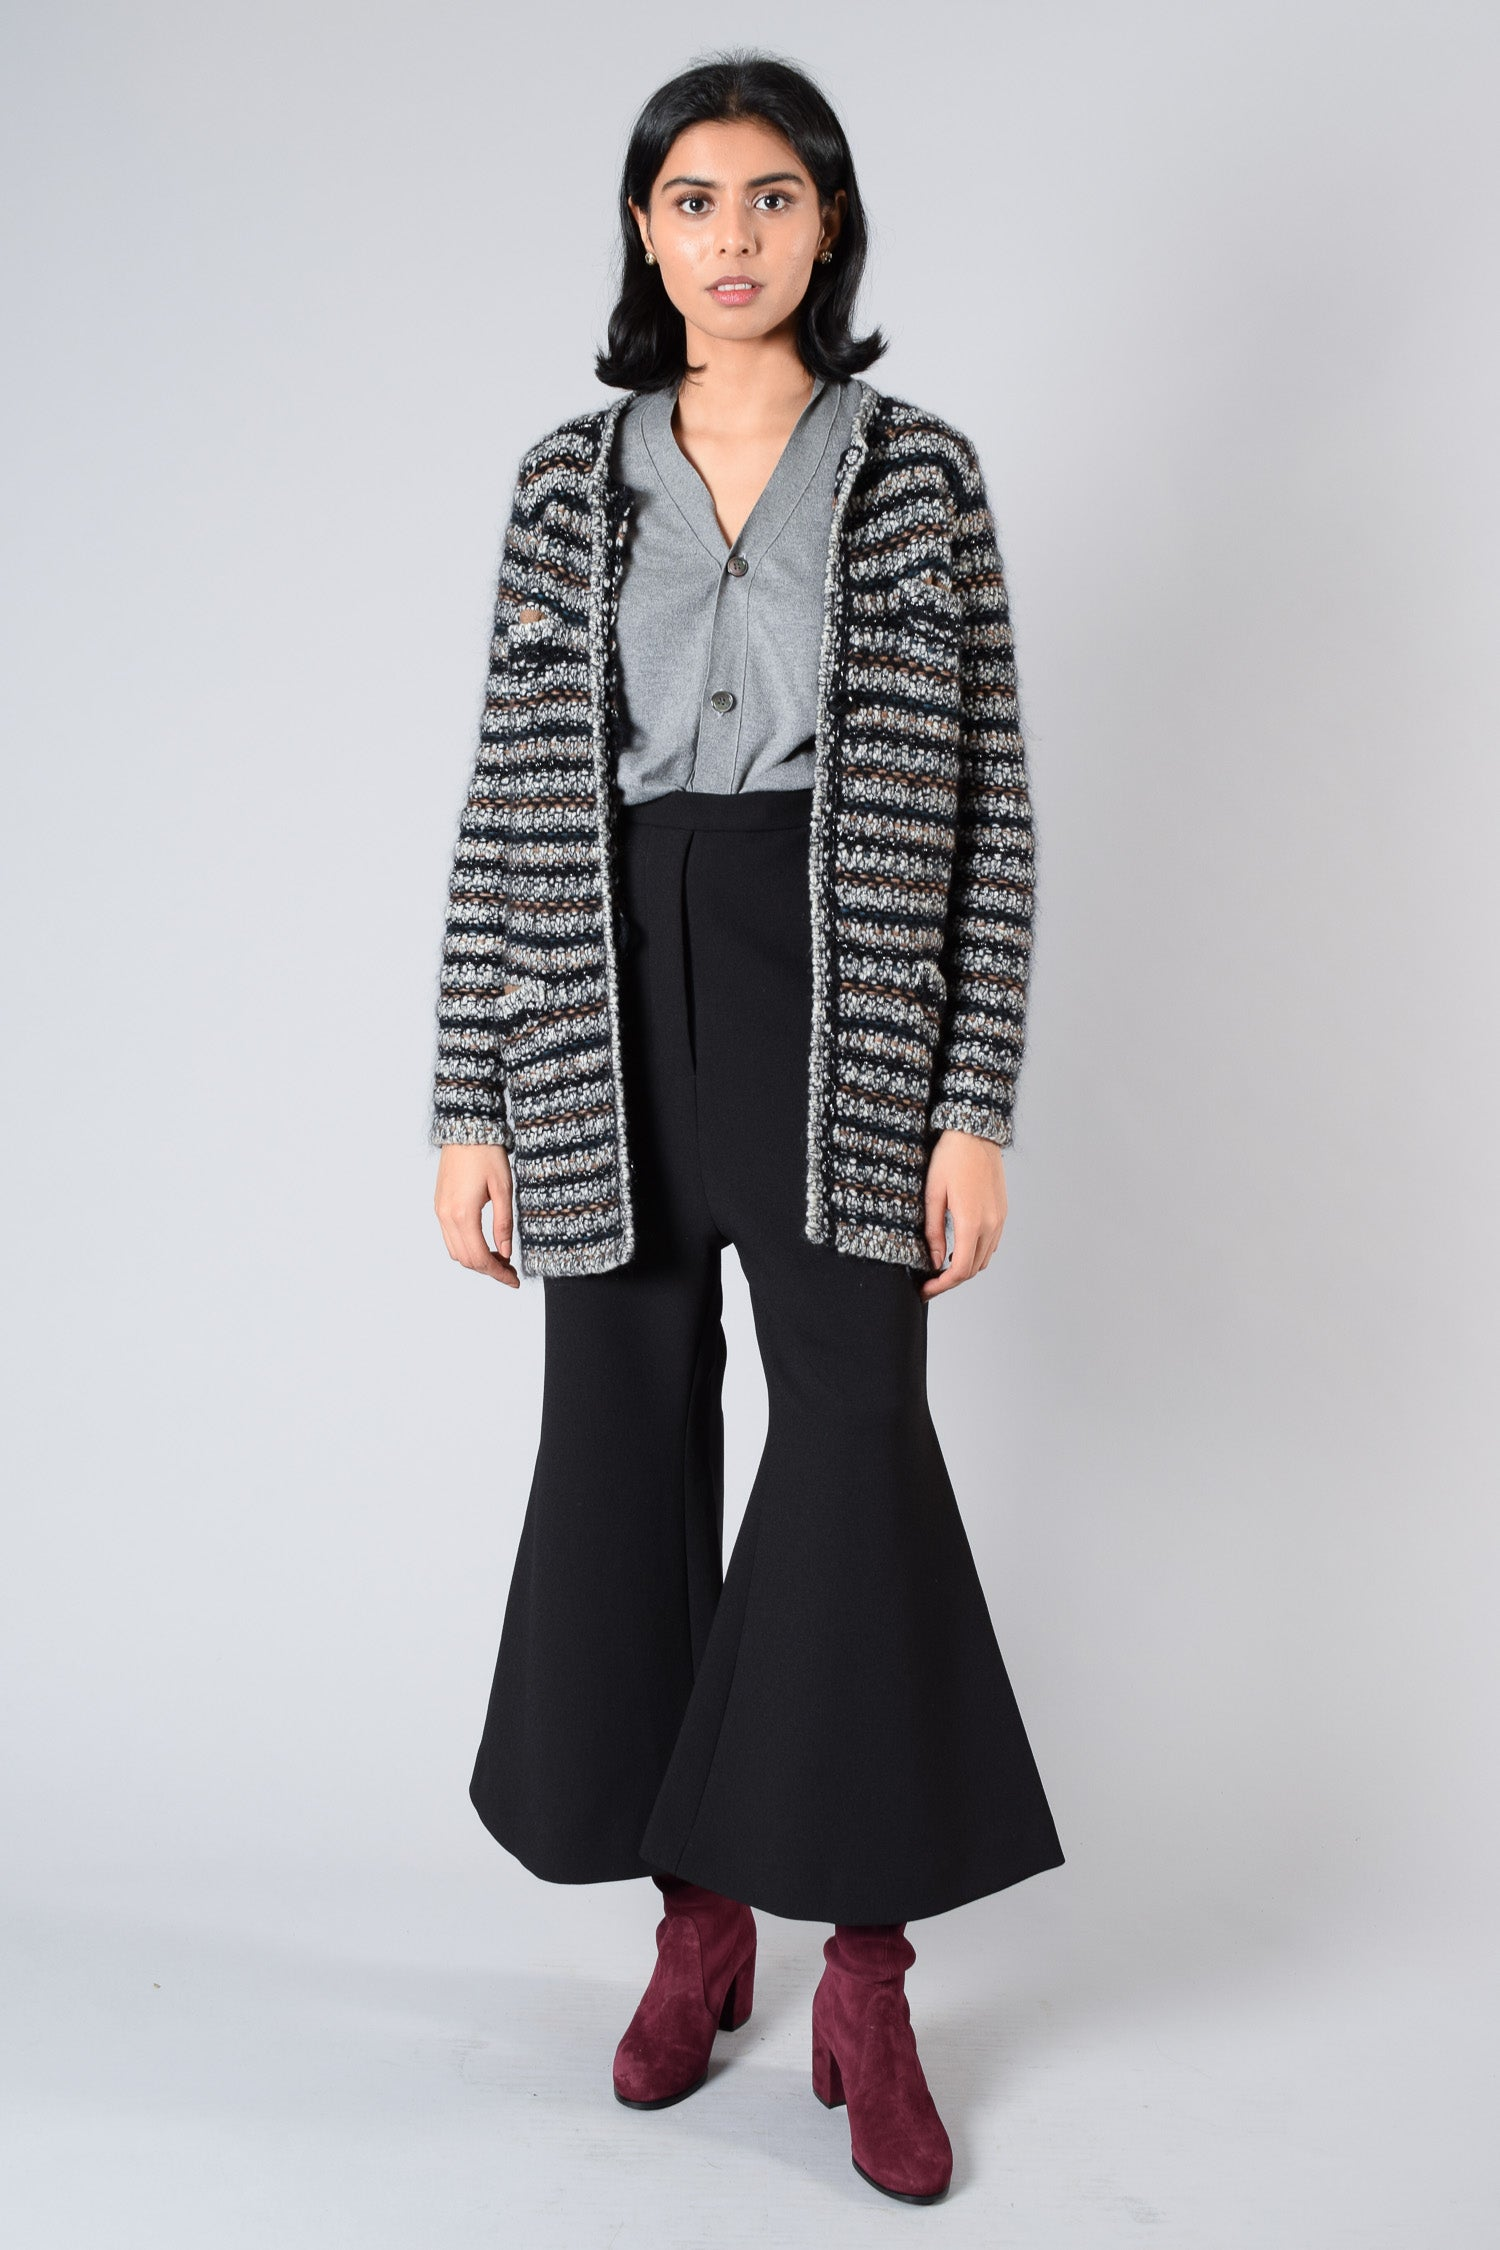 Isabel Marant Knit Striped Wool/Mohair Cardigan Size 36